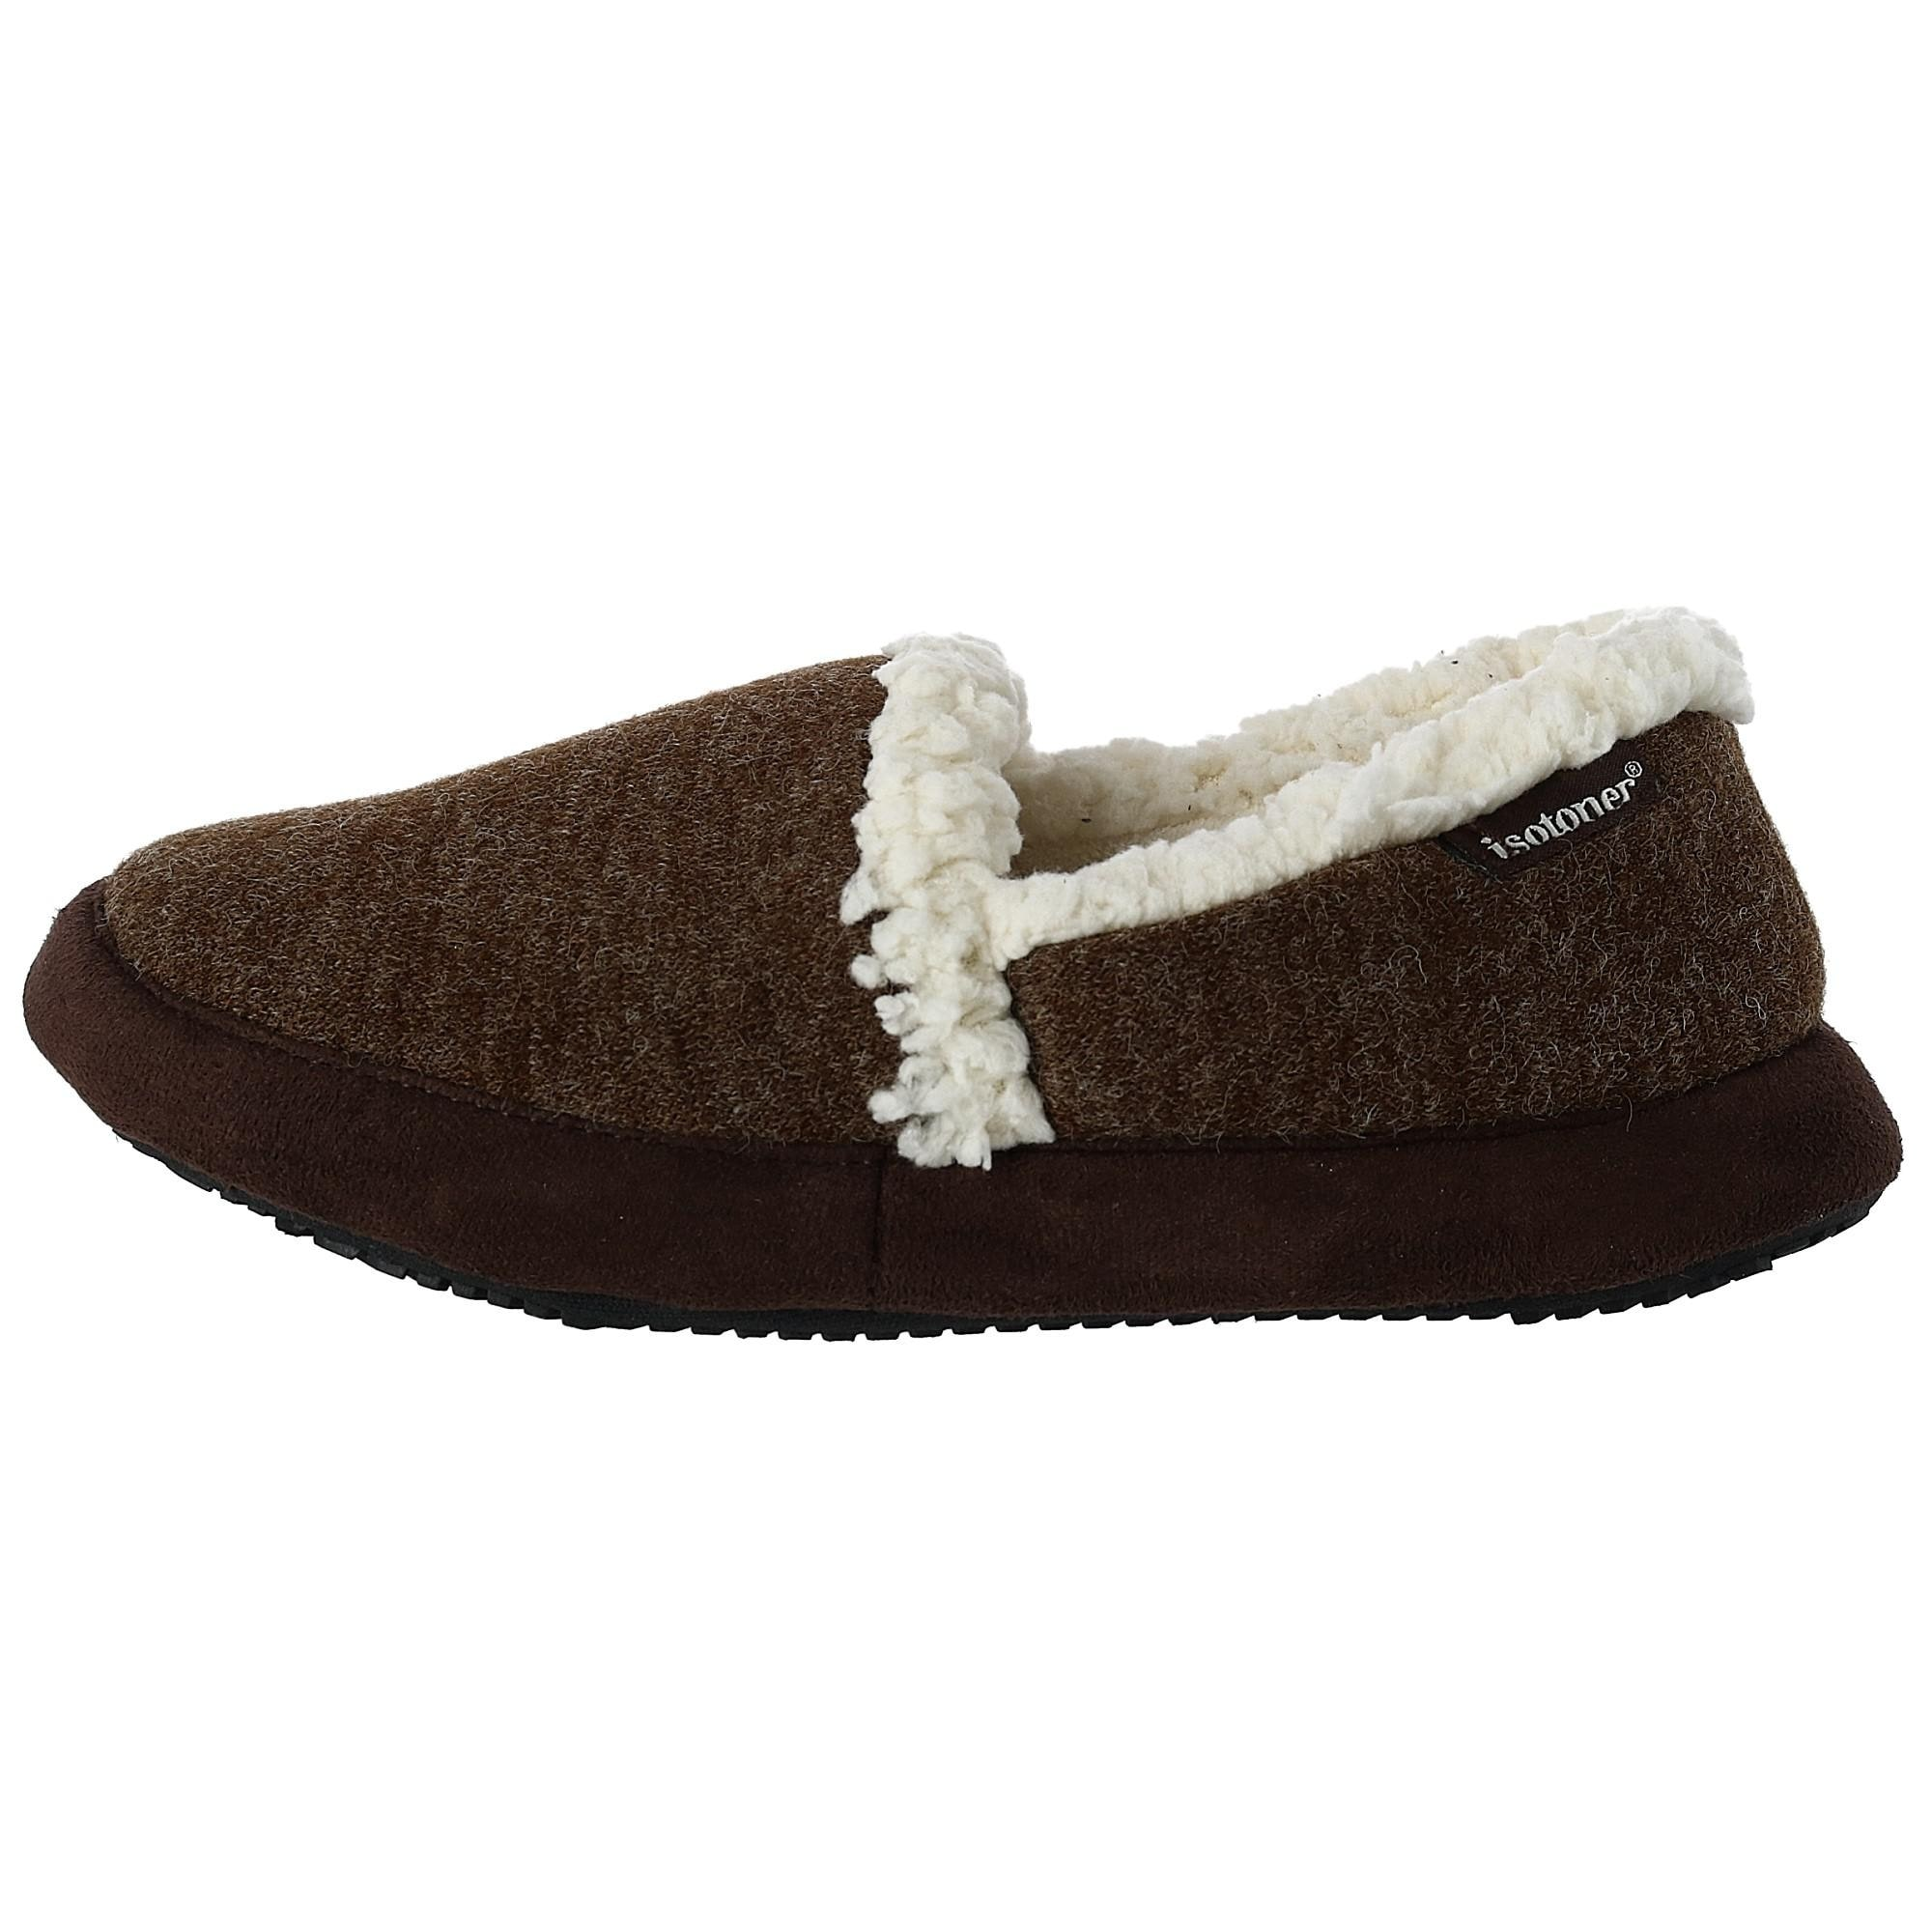 f645dbde8 Shop Isotoner Women's Microsuede Heather Knit Marisol Closed Back Scuff  Slipper - Free Shipping On Orders Over $45 - Overstock - 23513646